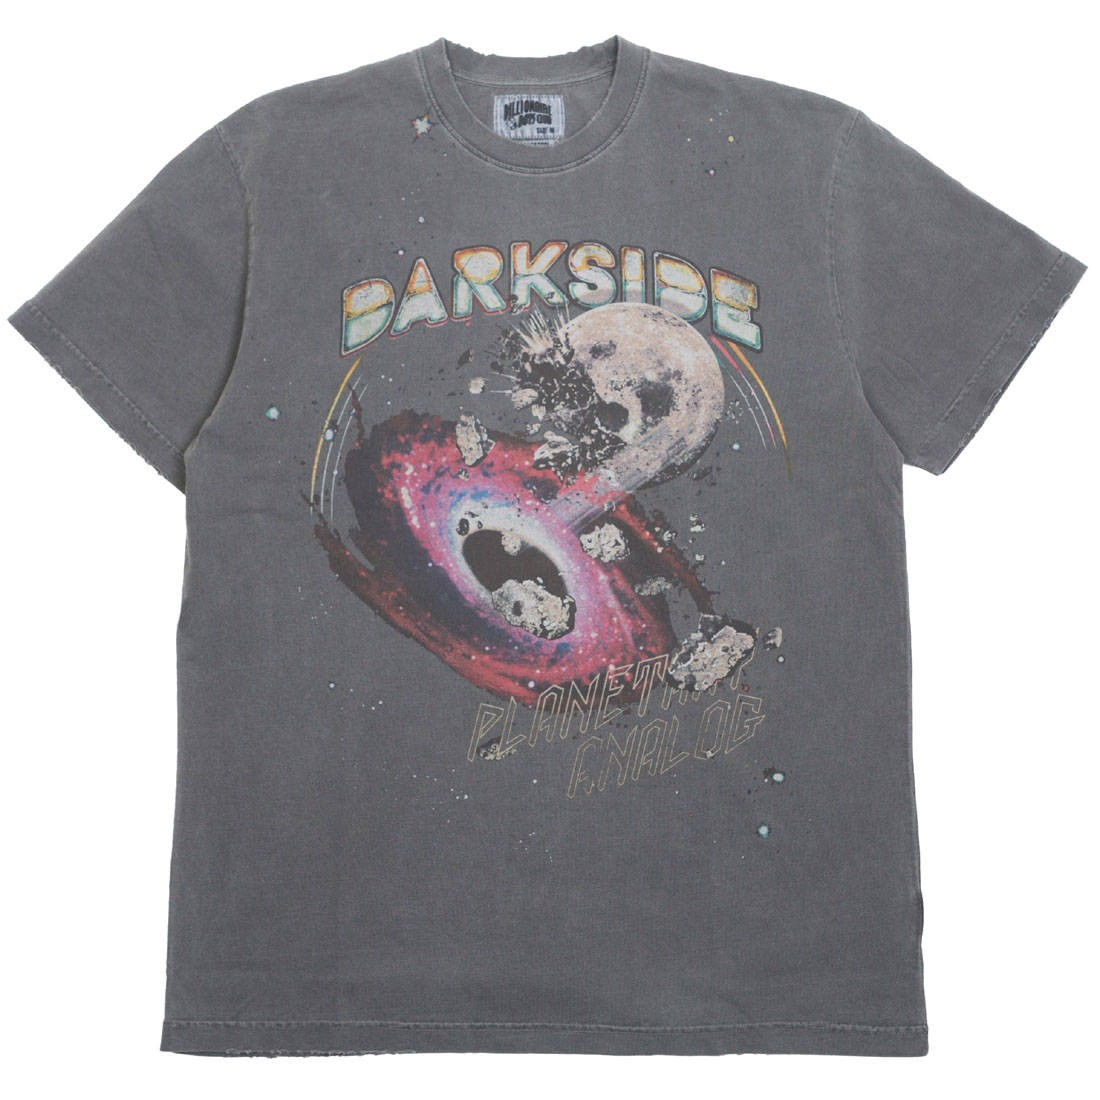 Billionaire Boys Club Men Darkside Knit Tee (gray / raven)